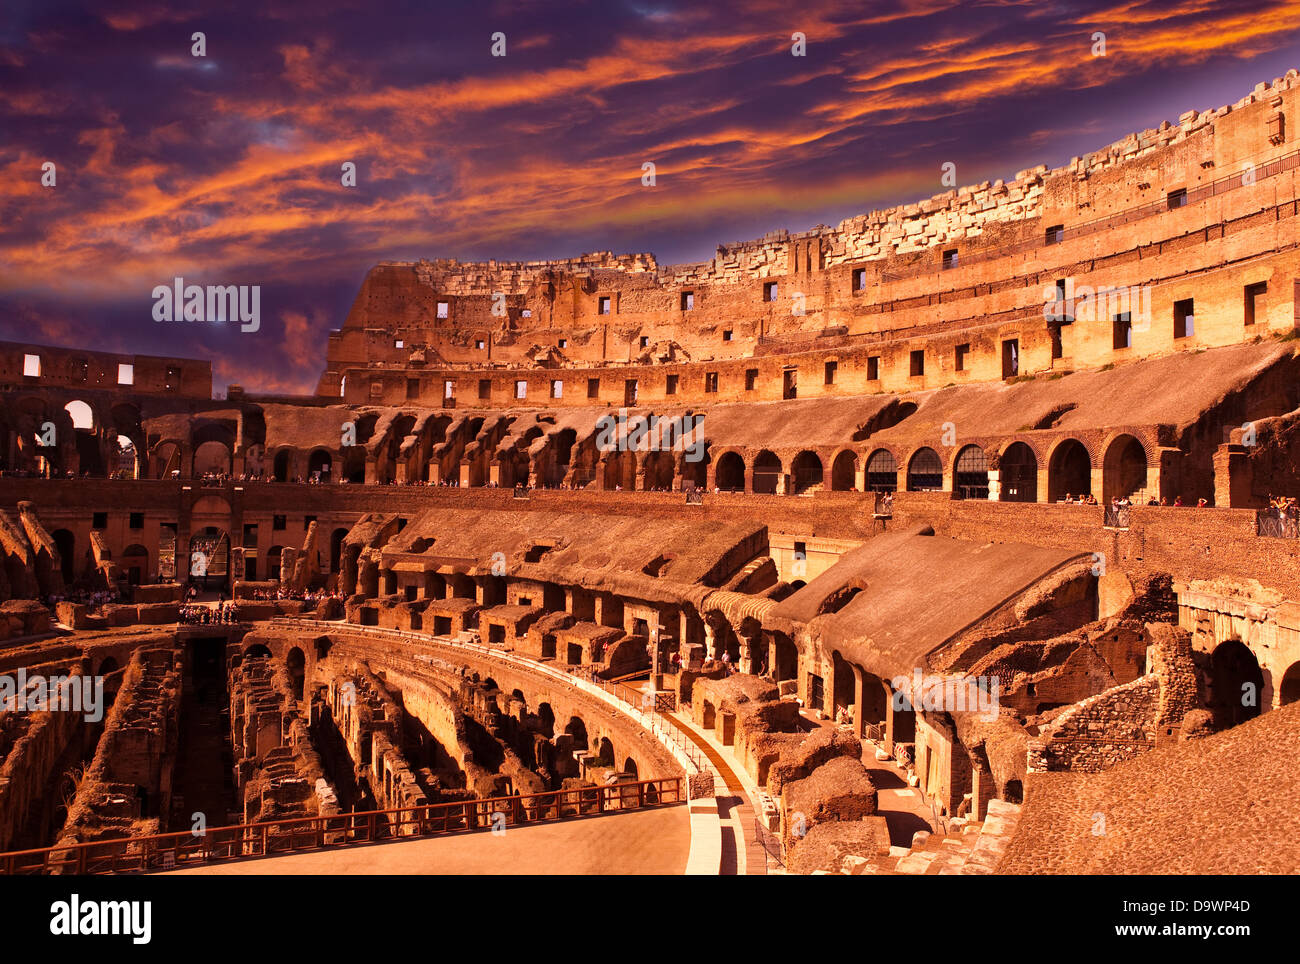 Bright crimson sunset over the ancient Colosseum. Rome. Italy - Stock Image